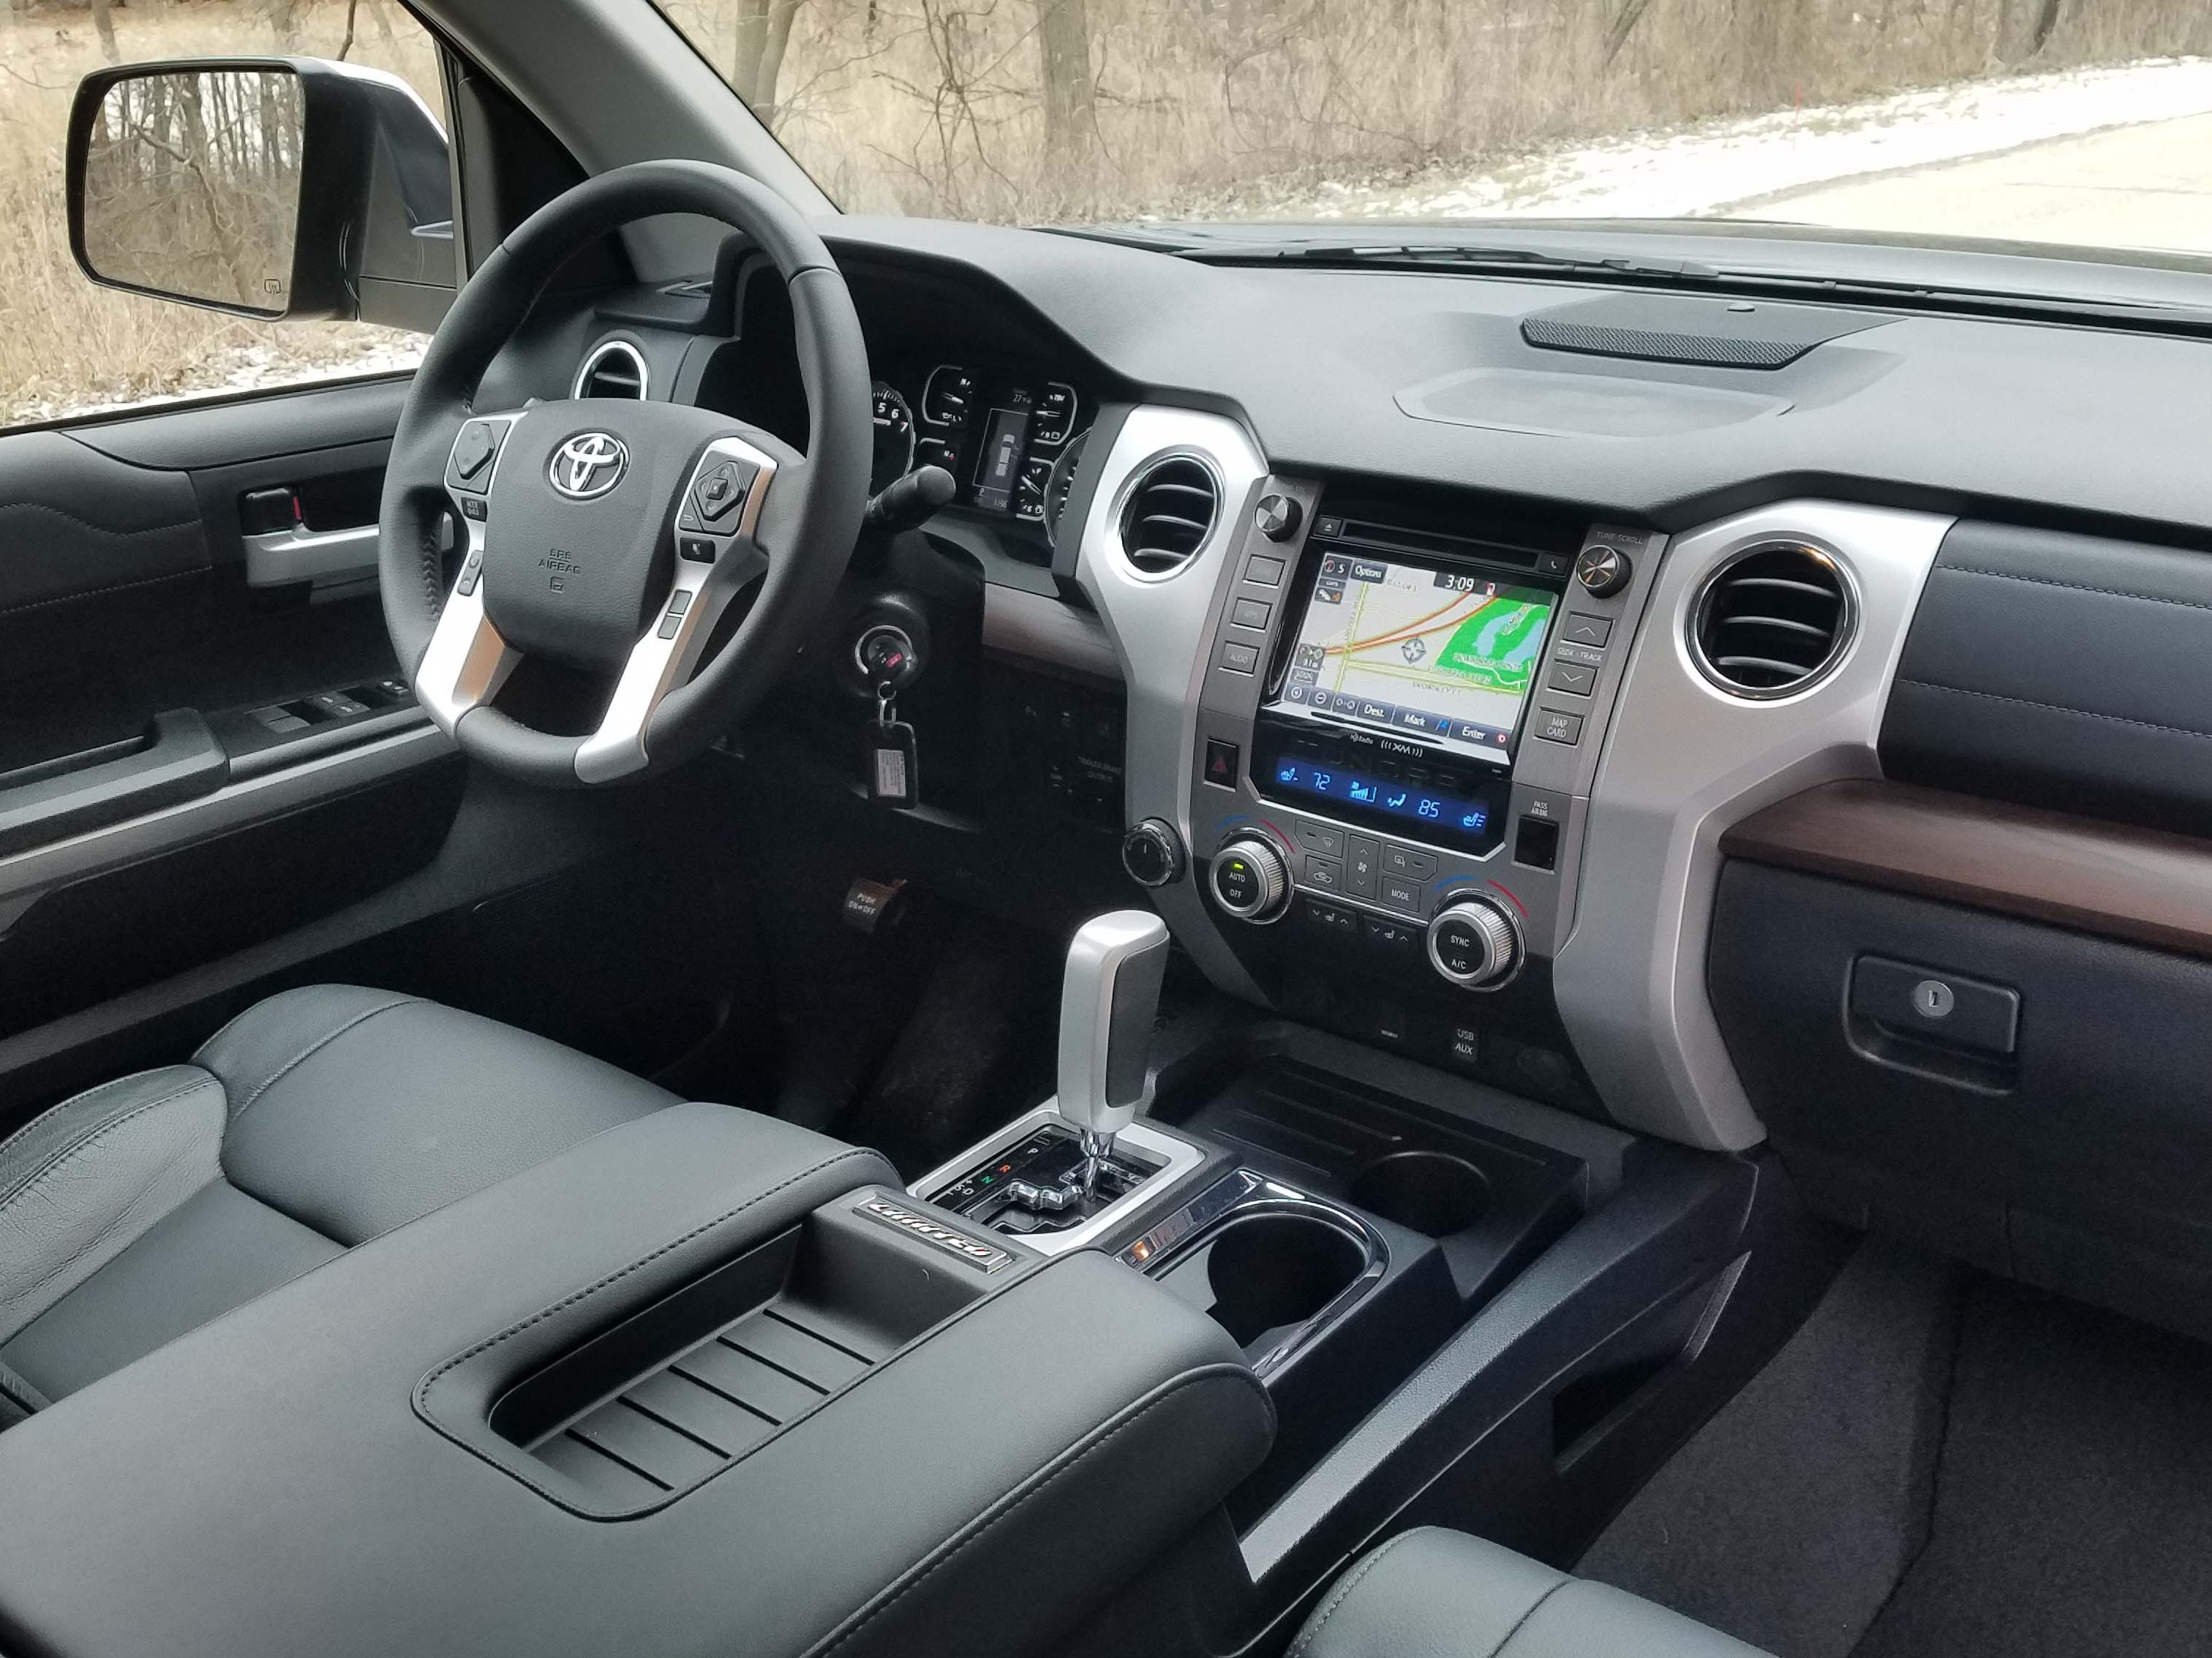 The 2019 Toyota Tundra cabin is a comfy place to be, though it lacks the refinement of comparable Detroit-brand trucks.